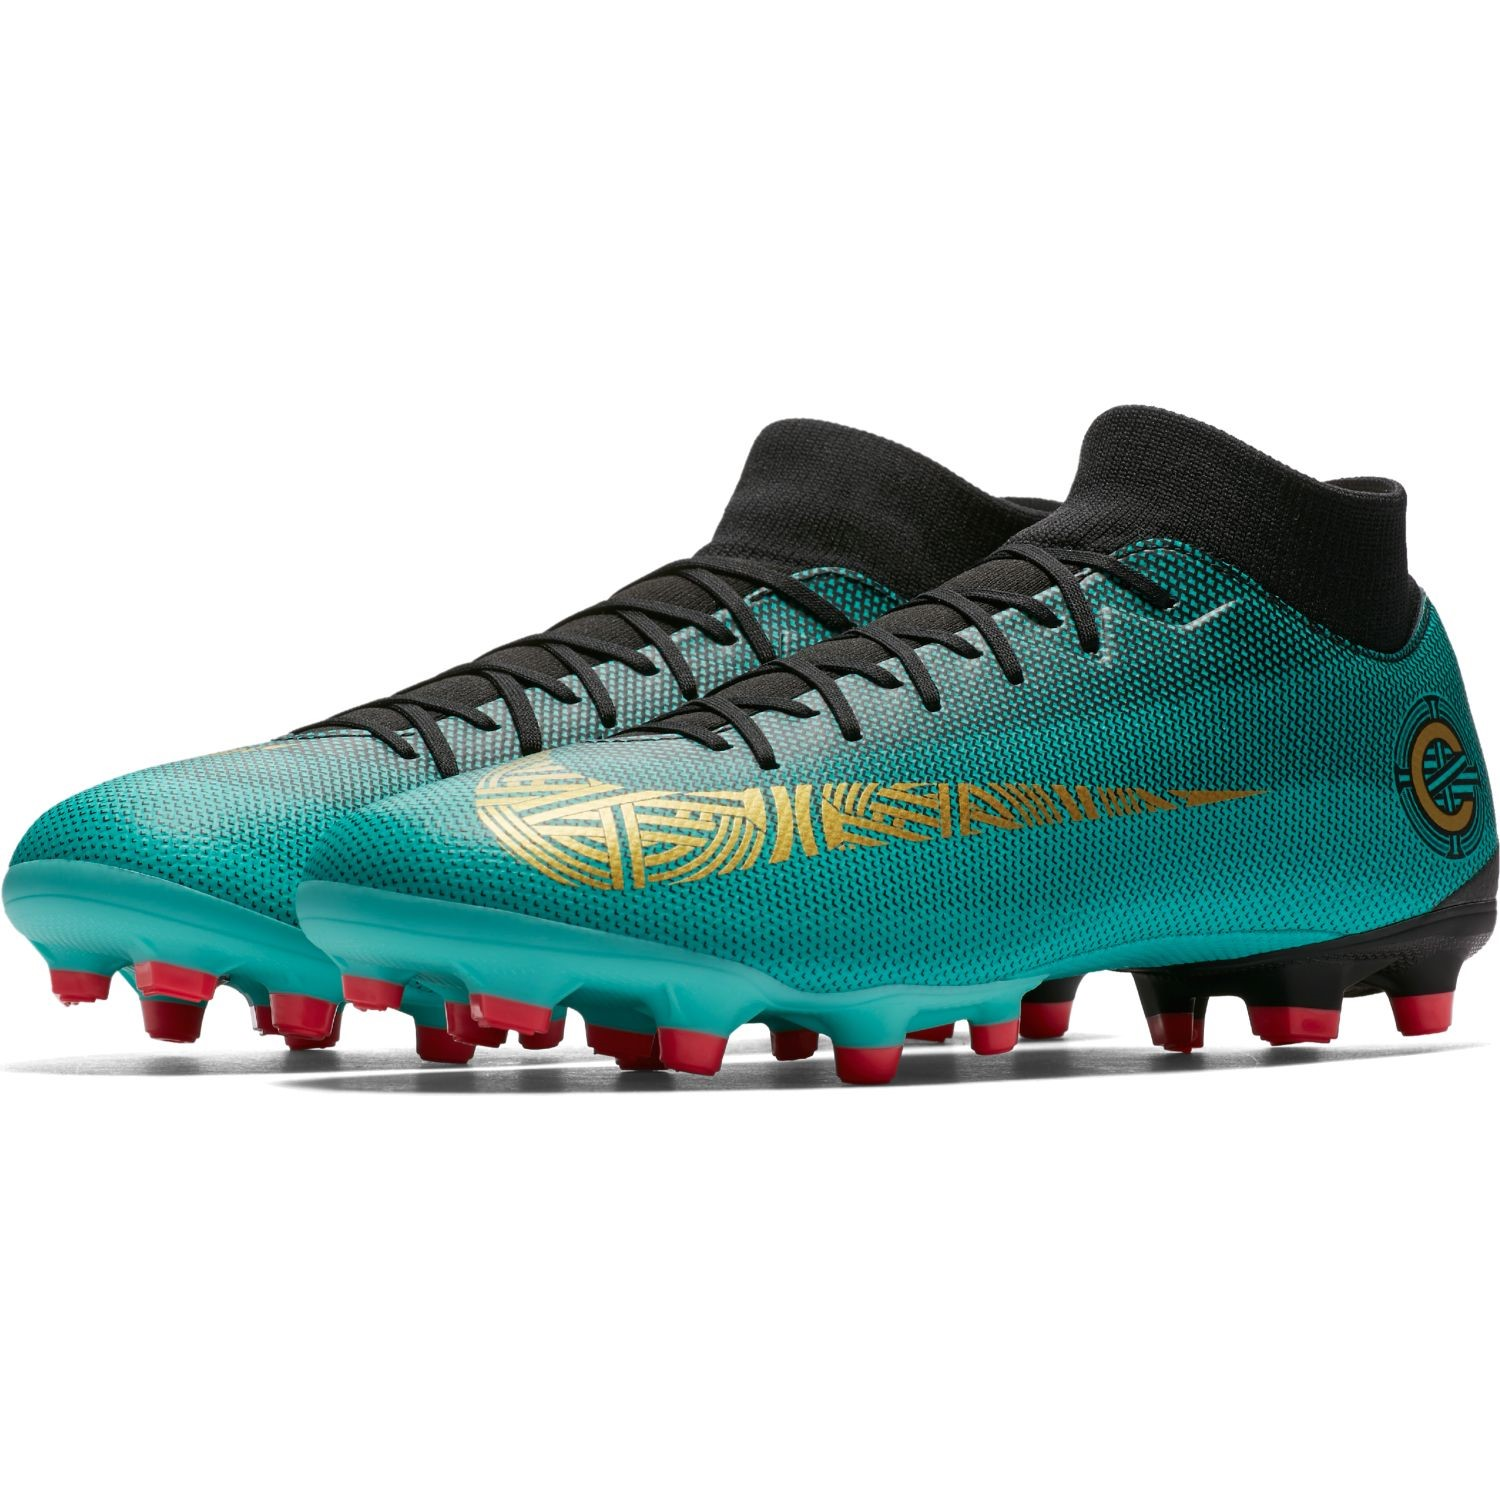 a231f6a626b9 Nike Mercurial Superfly VI Academy CR7 MG - Mens Football Boots - Clear Jade  Metallic